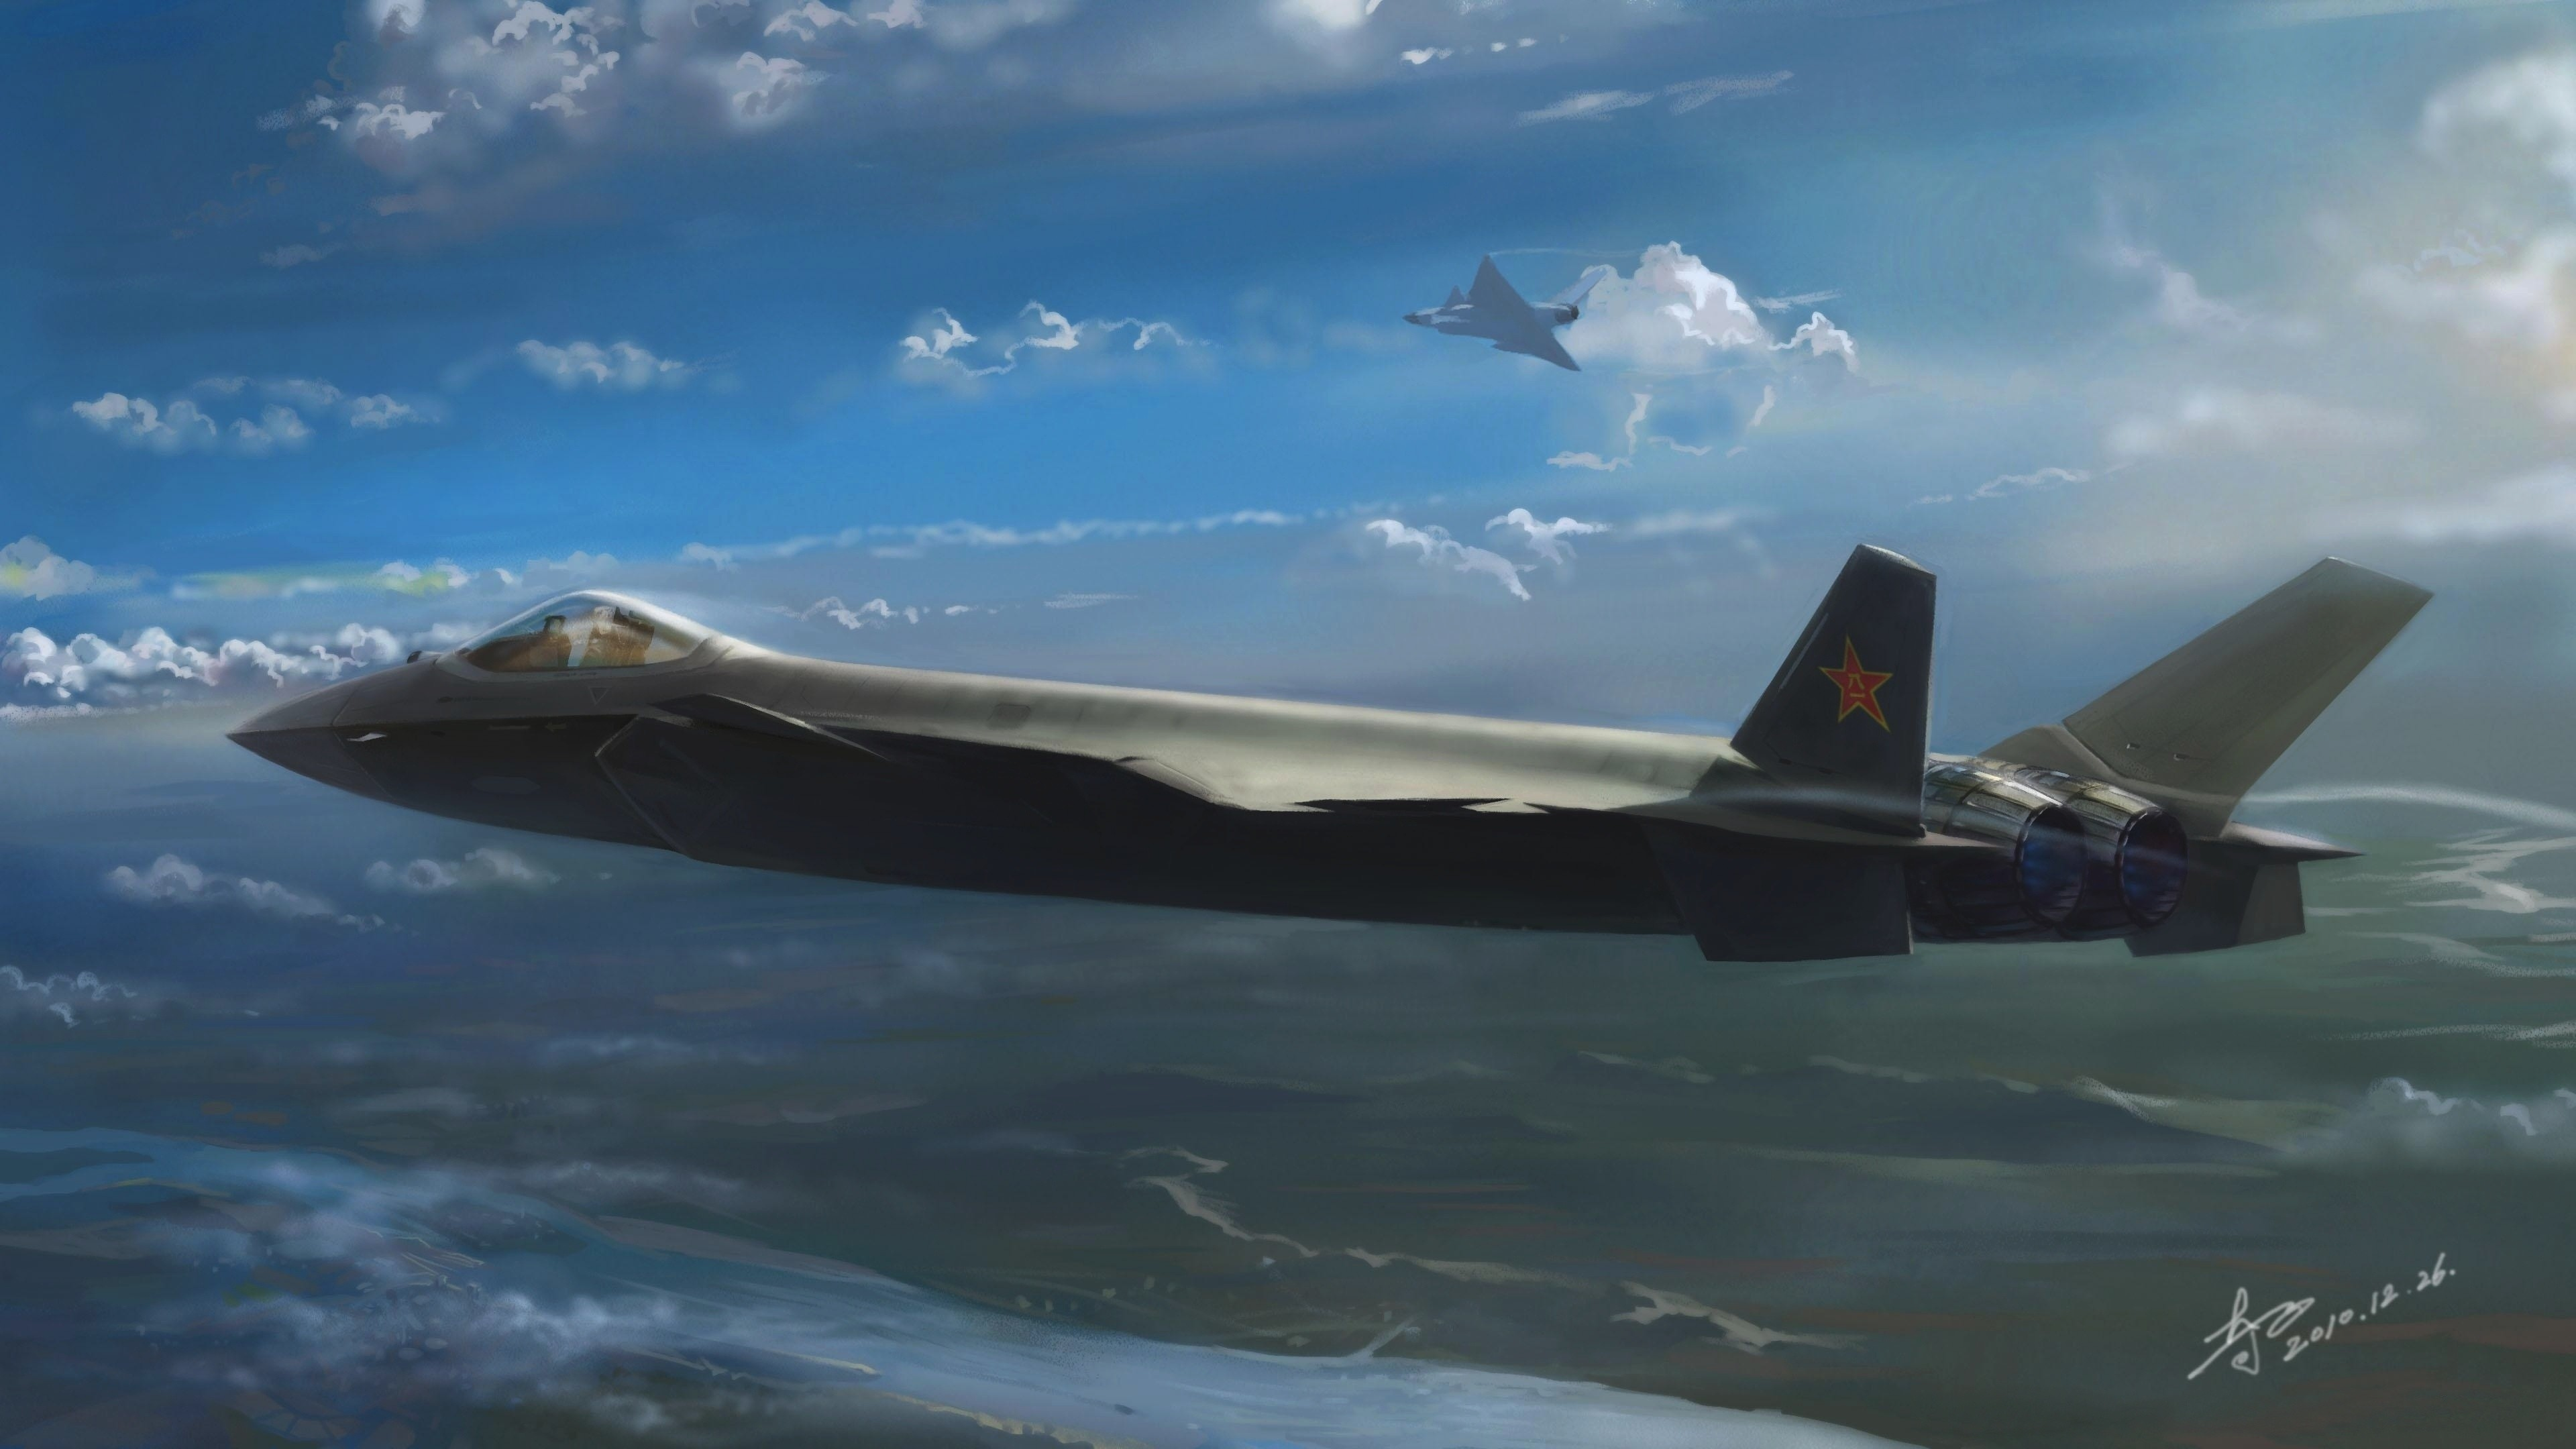 Stealth Aircraft Computer Wallpapers Desktop Backgrounds 3840x2160